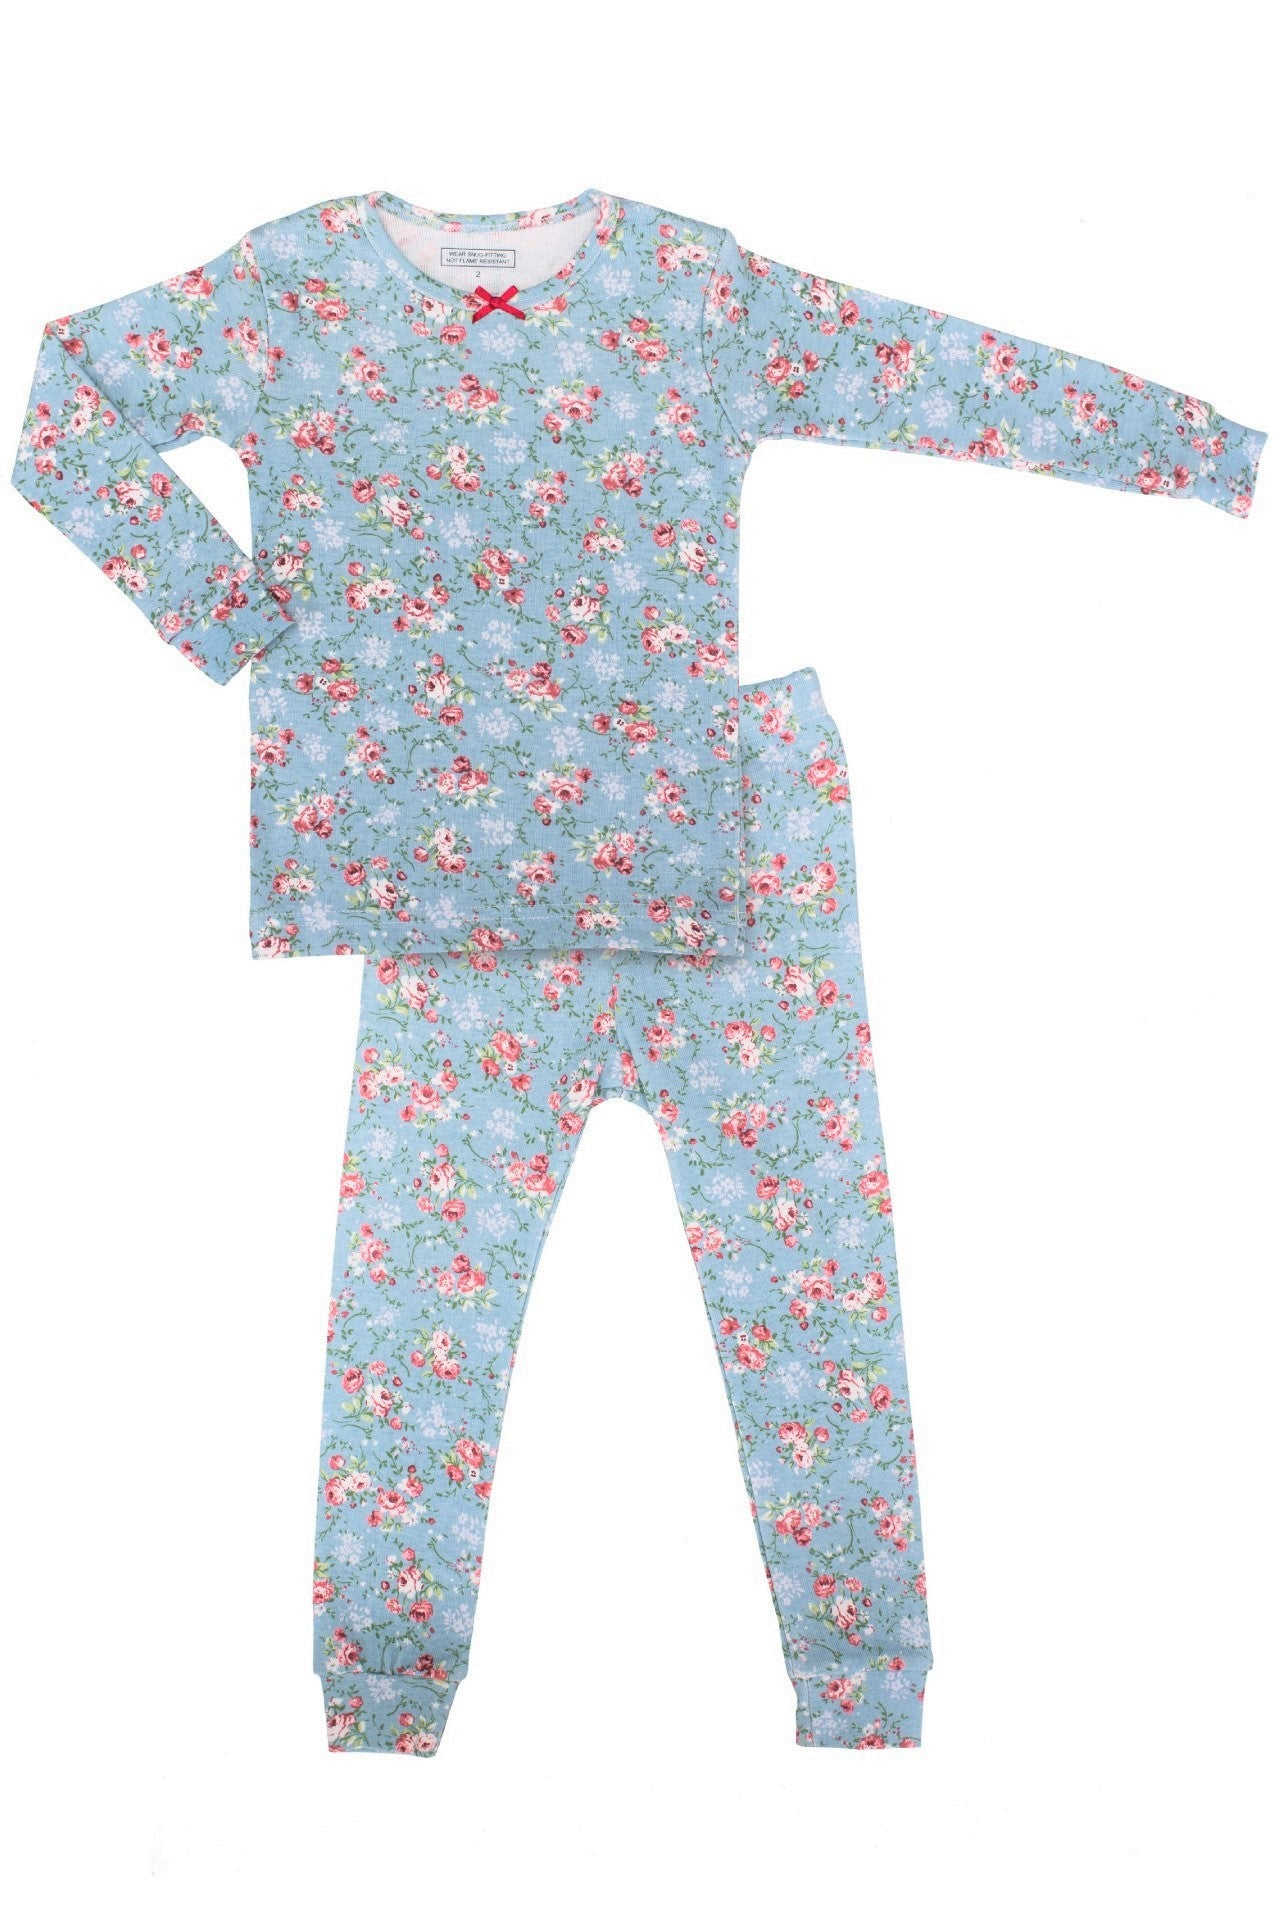 20s Cotton Count - Medium Warmth Pajamas - Isabella